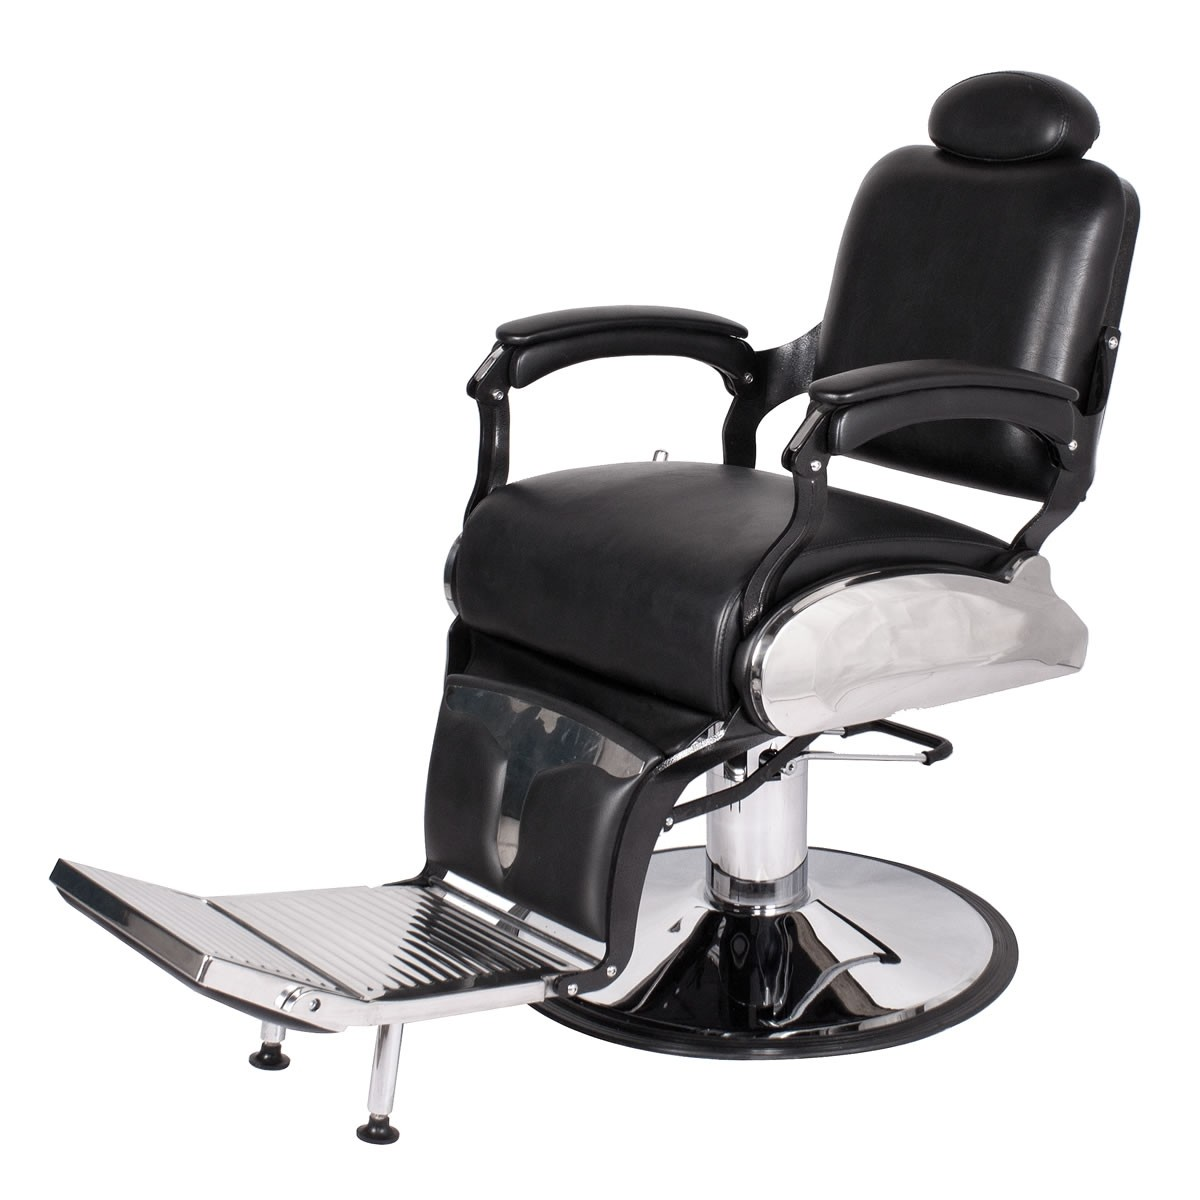 """ZEUS"" Heavy Duty Barber Chair, ""ZEUS"" Heavy Duty Barbershop Chairs"